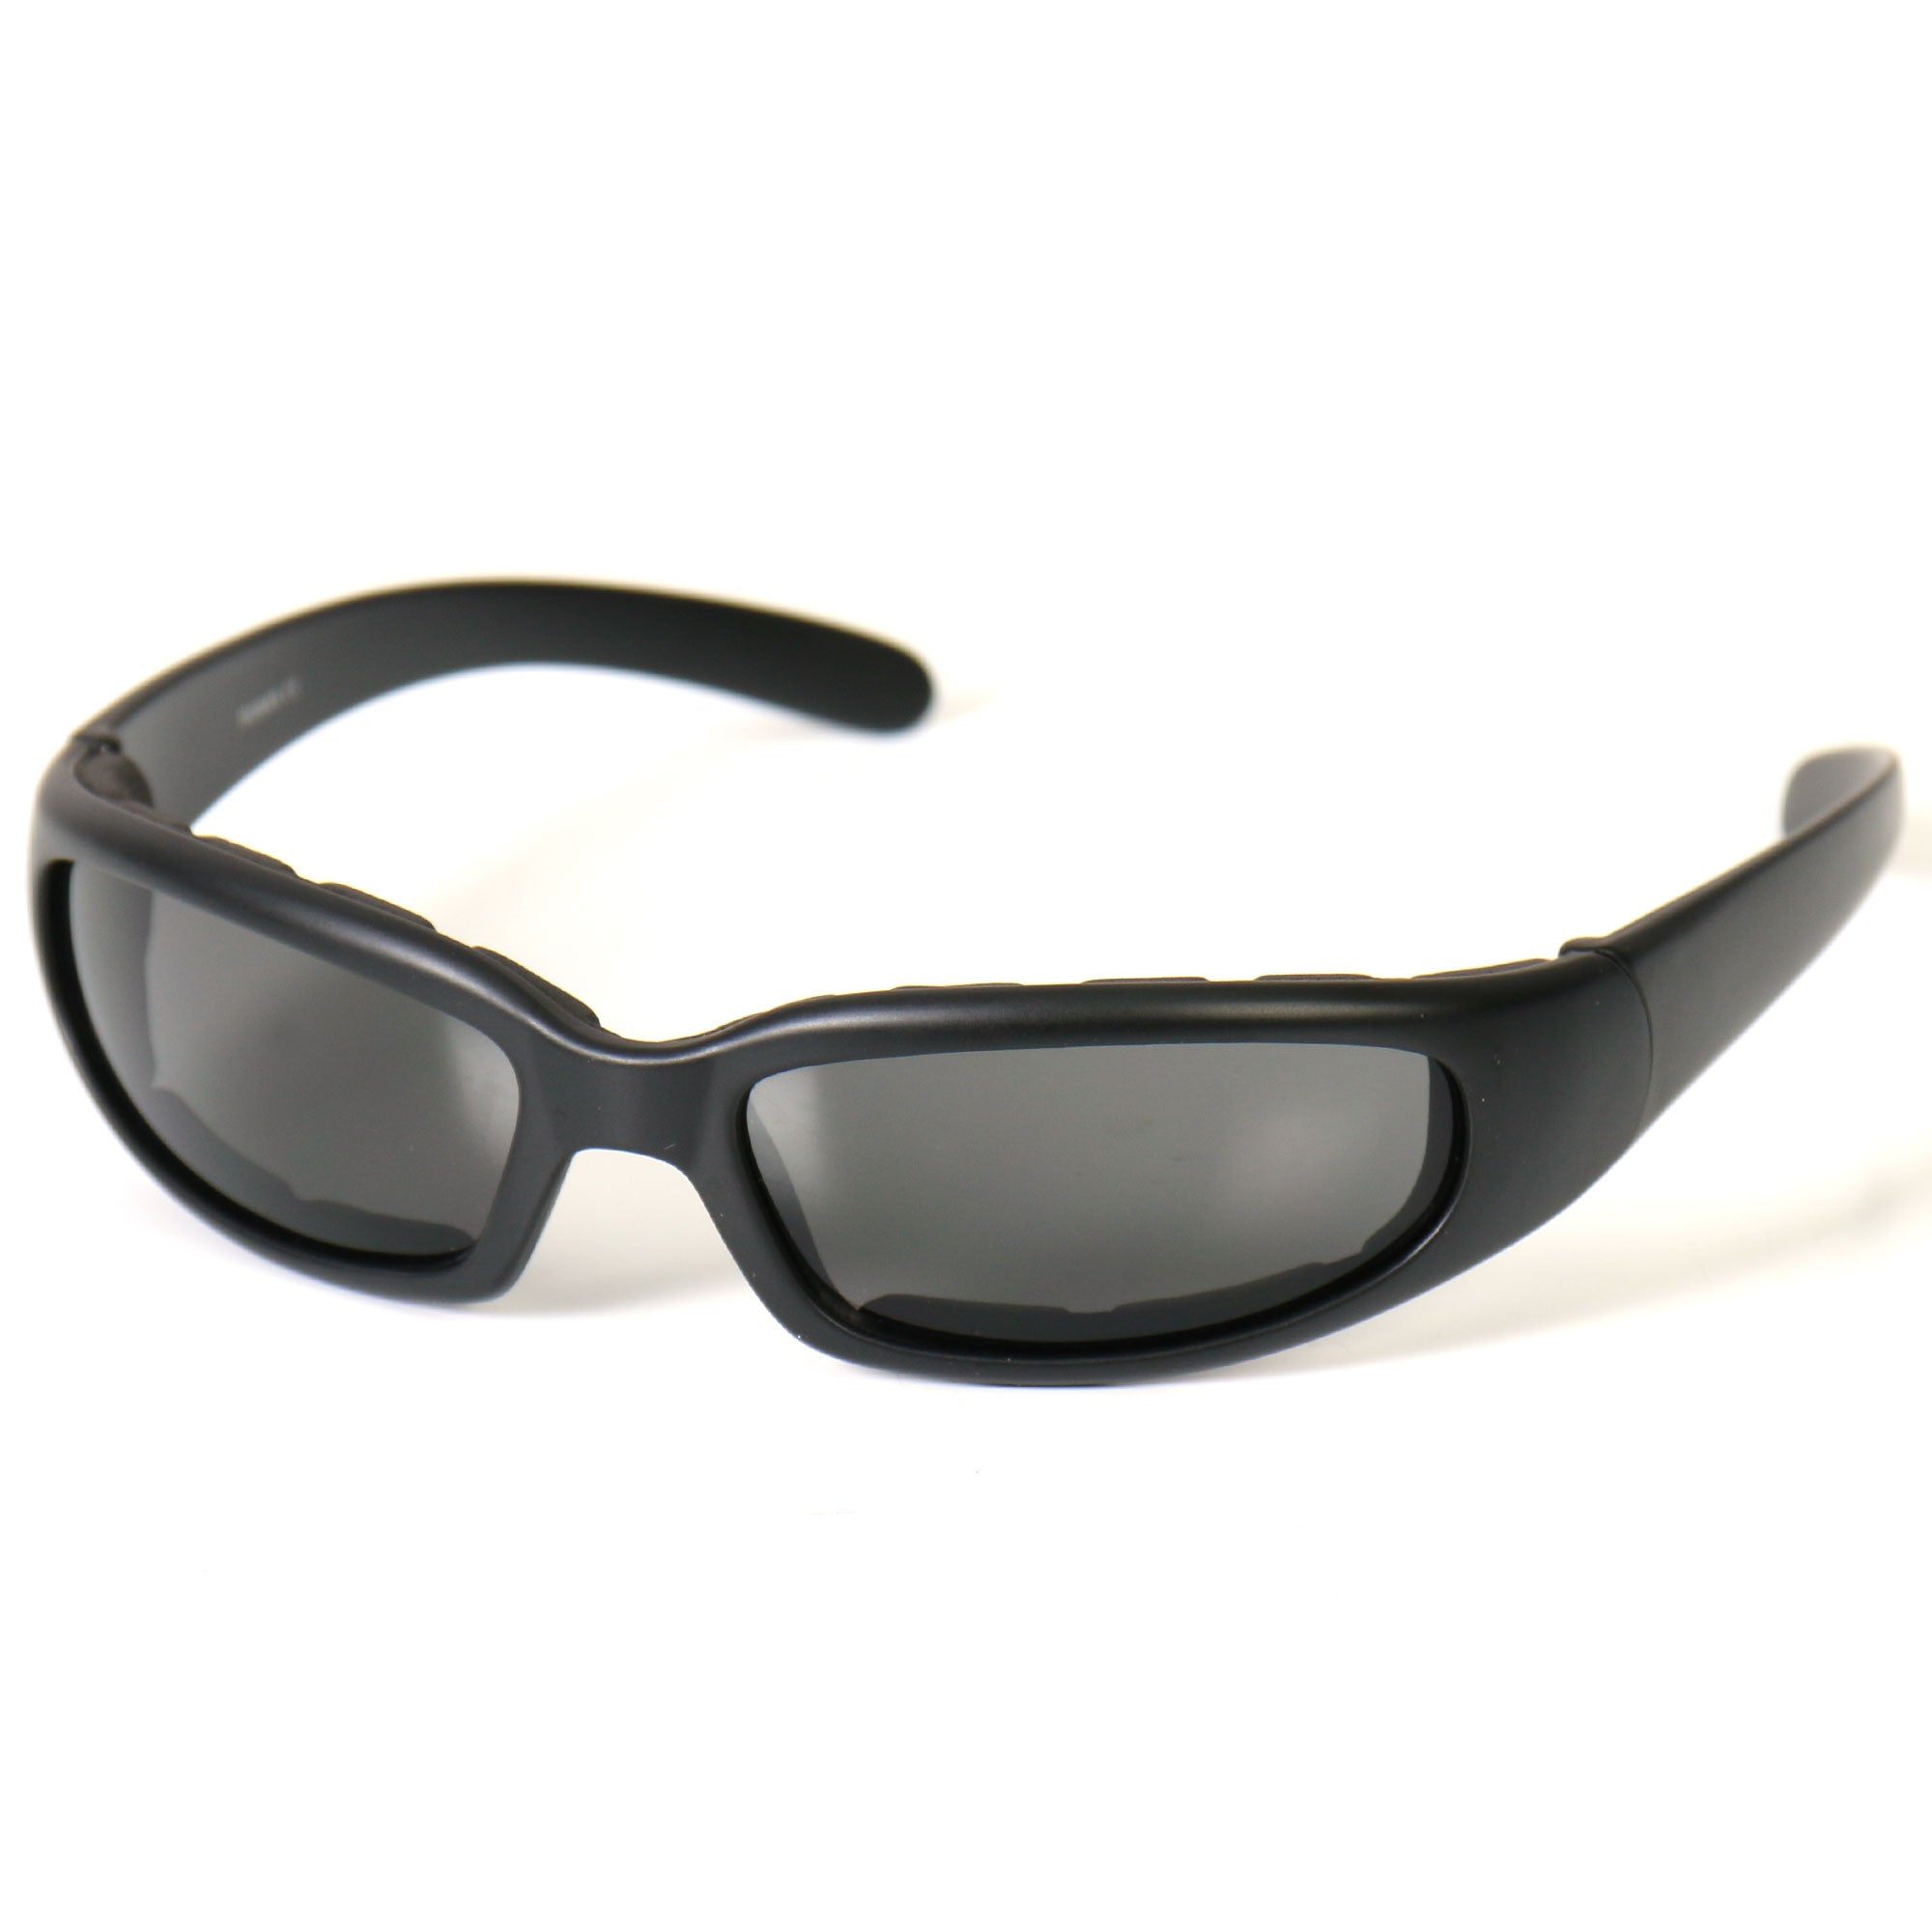 Hot Leathers Chicago Riding Sunglasses w/Smoke Lenses